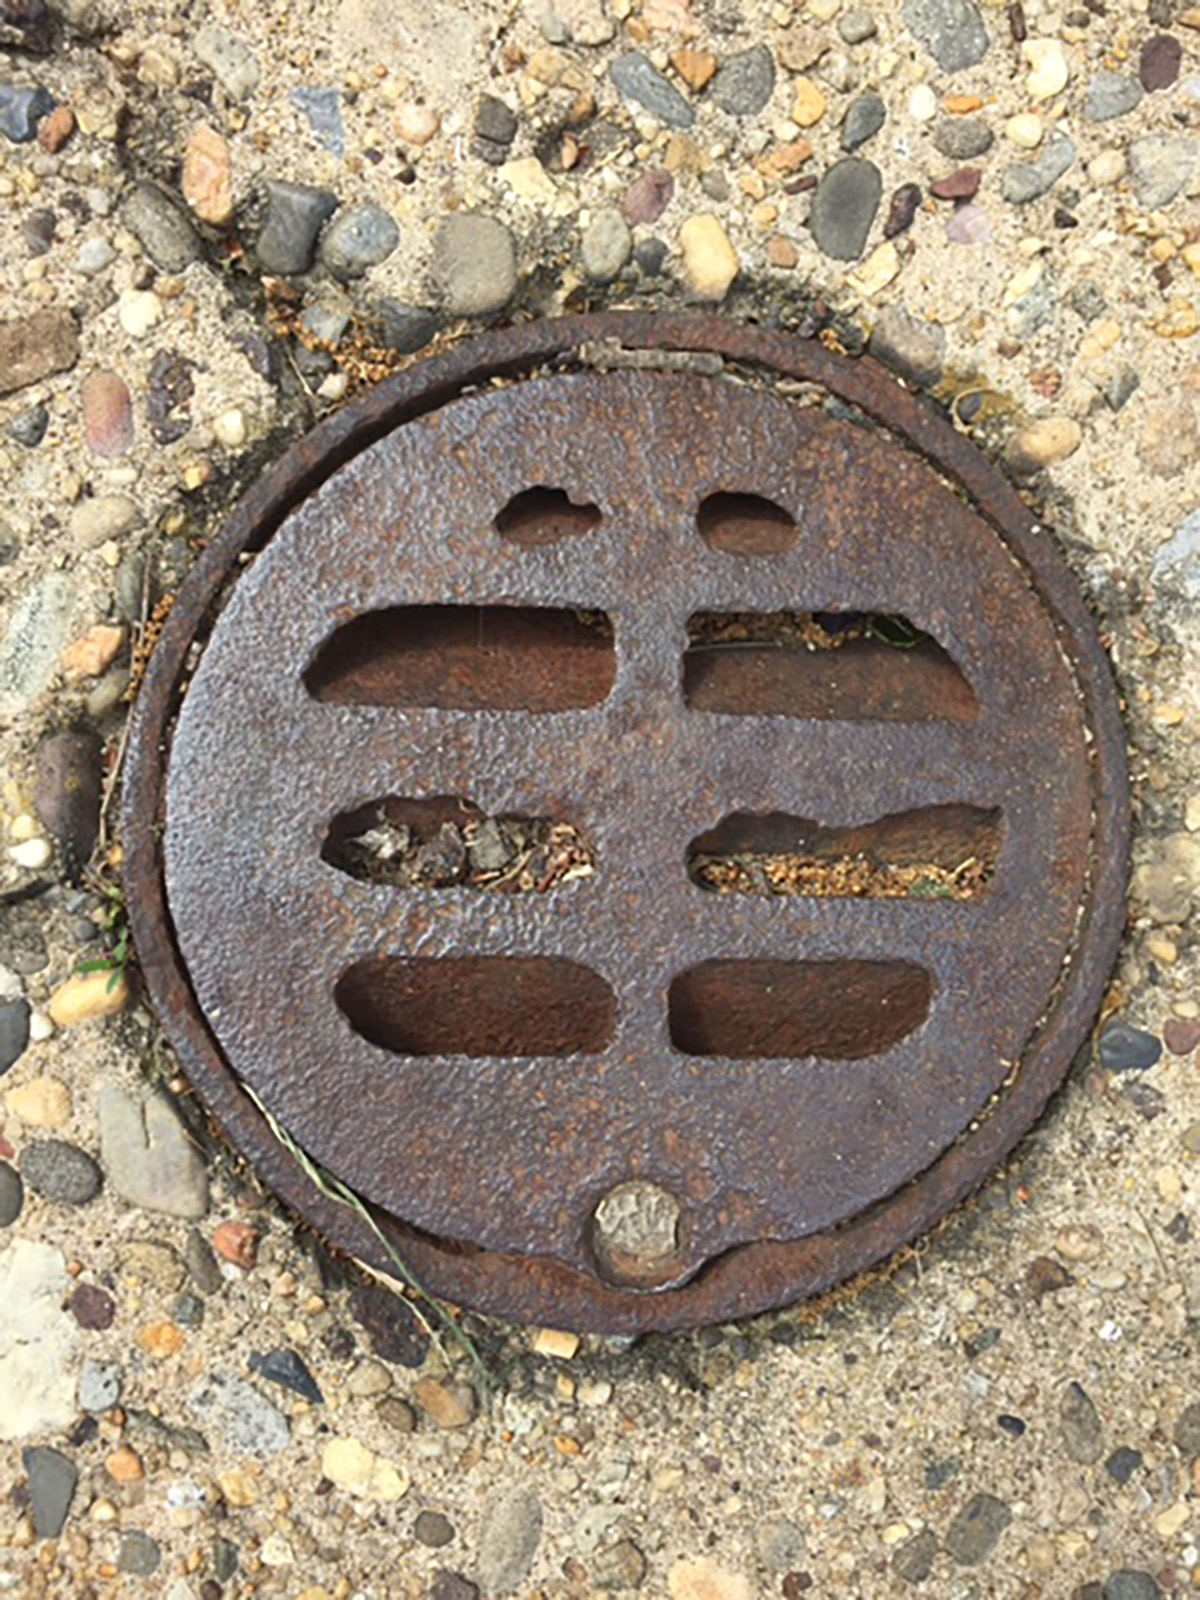 Finding your external plumbing covers - Solution Based Plumbing